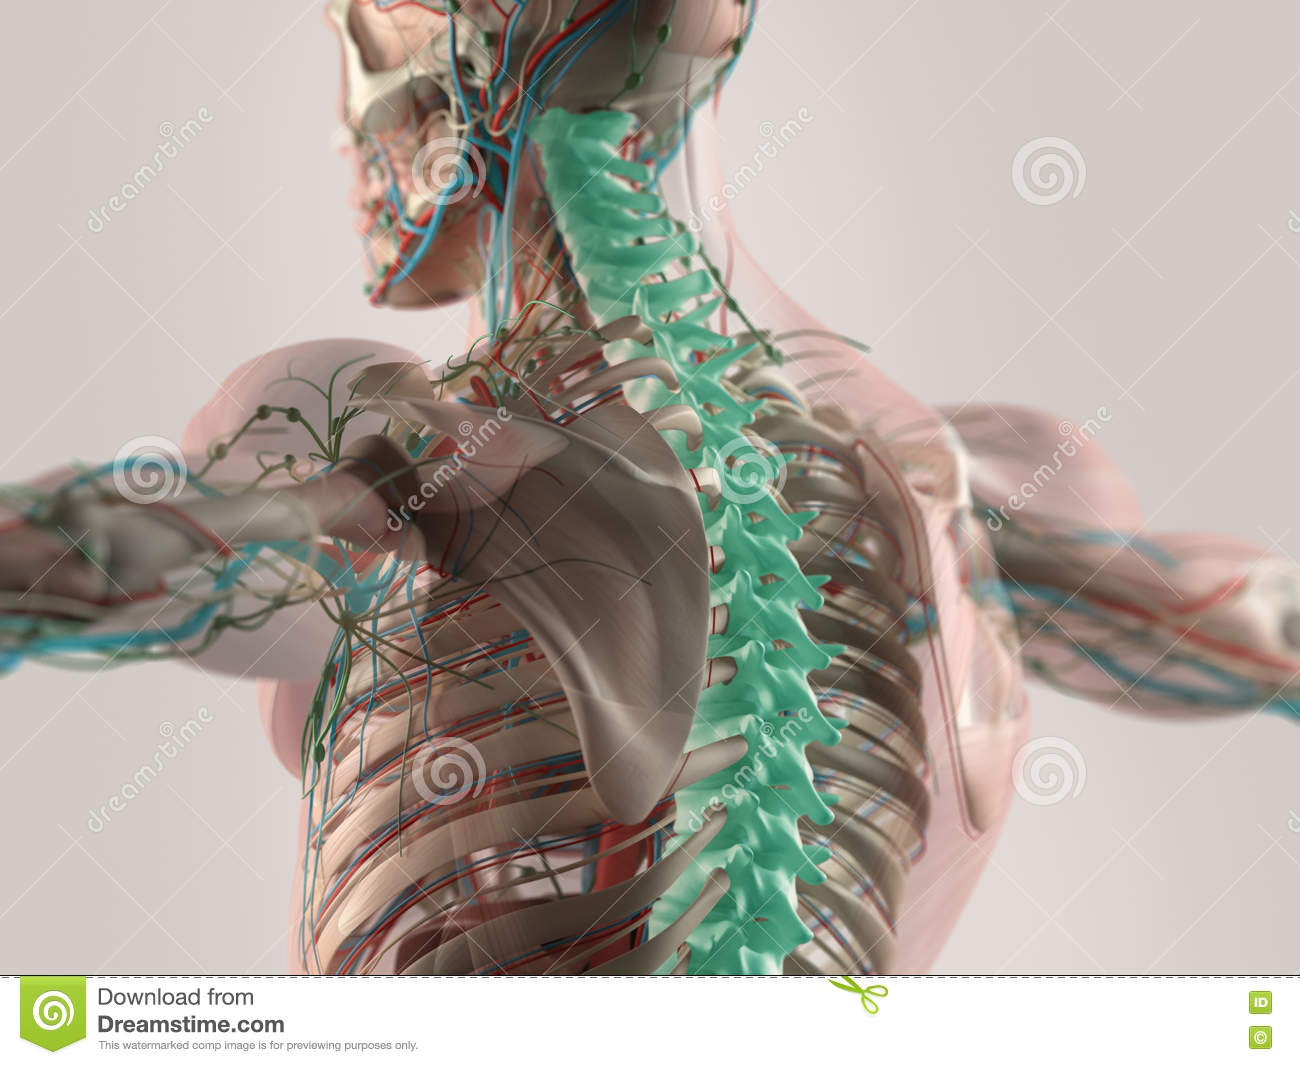 Human Anatomy Illustrated Stock Image Image Of Human 67626963